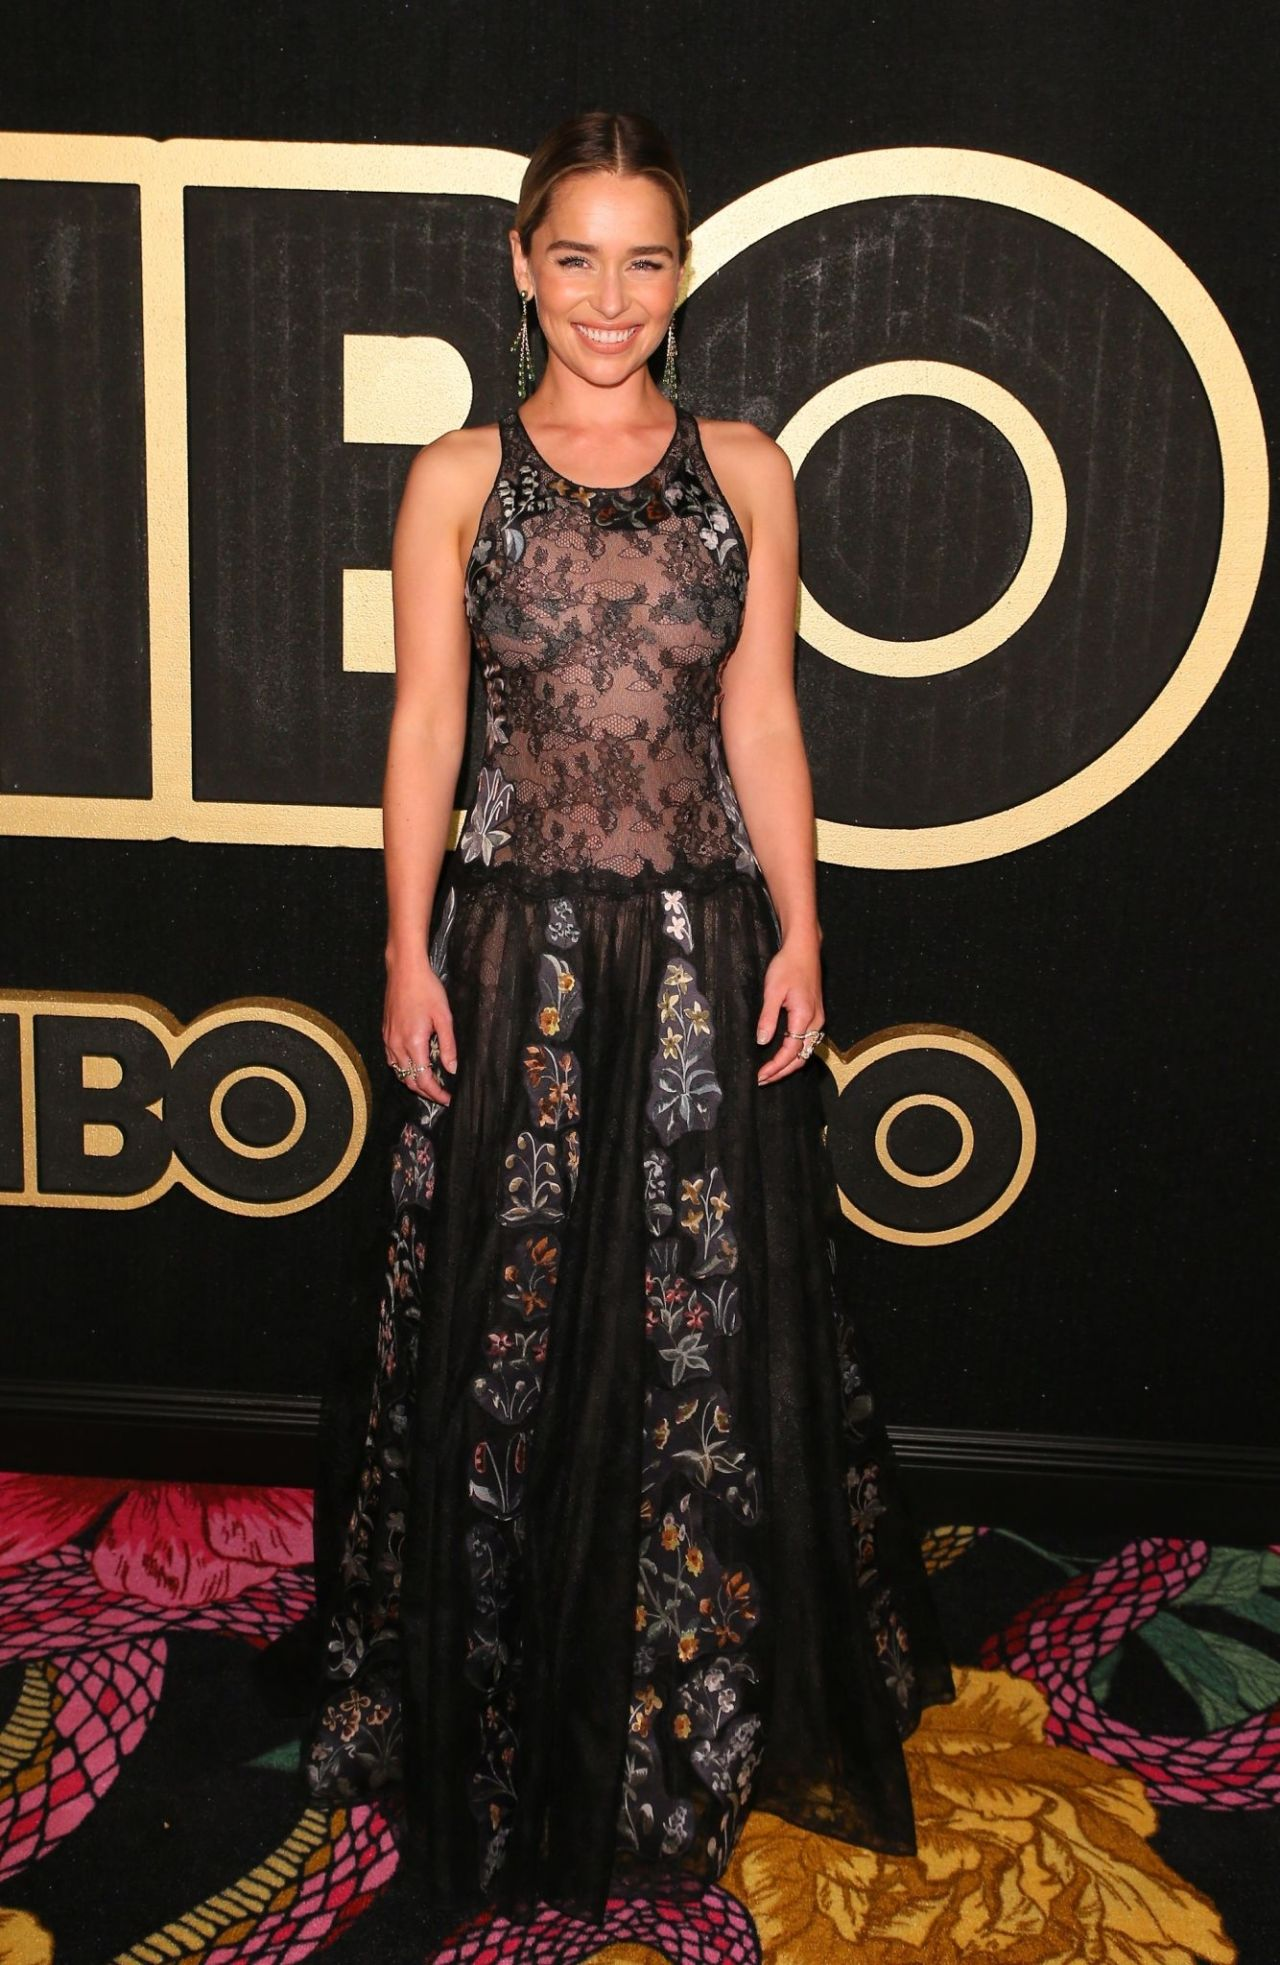 https://celebmafia.com/wp-content/uploads/2018/09/emilia-clarke-2018-emmy-awards-hbo-party-6.jpg